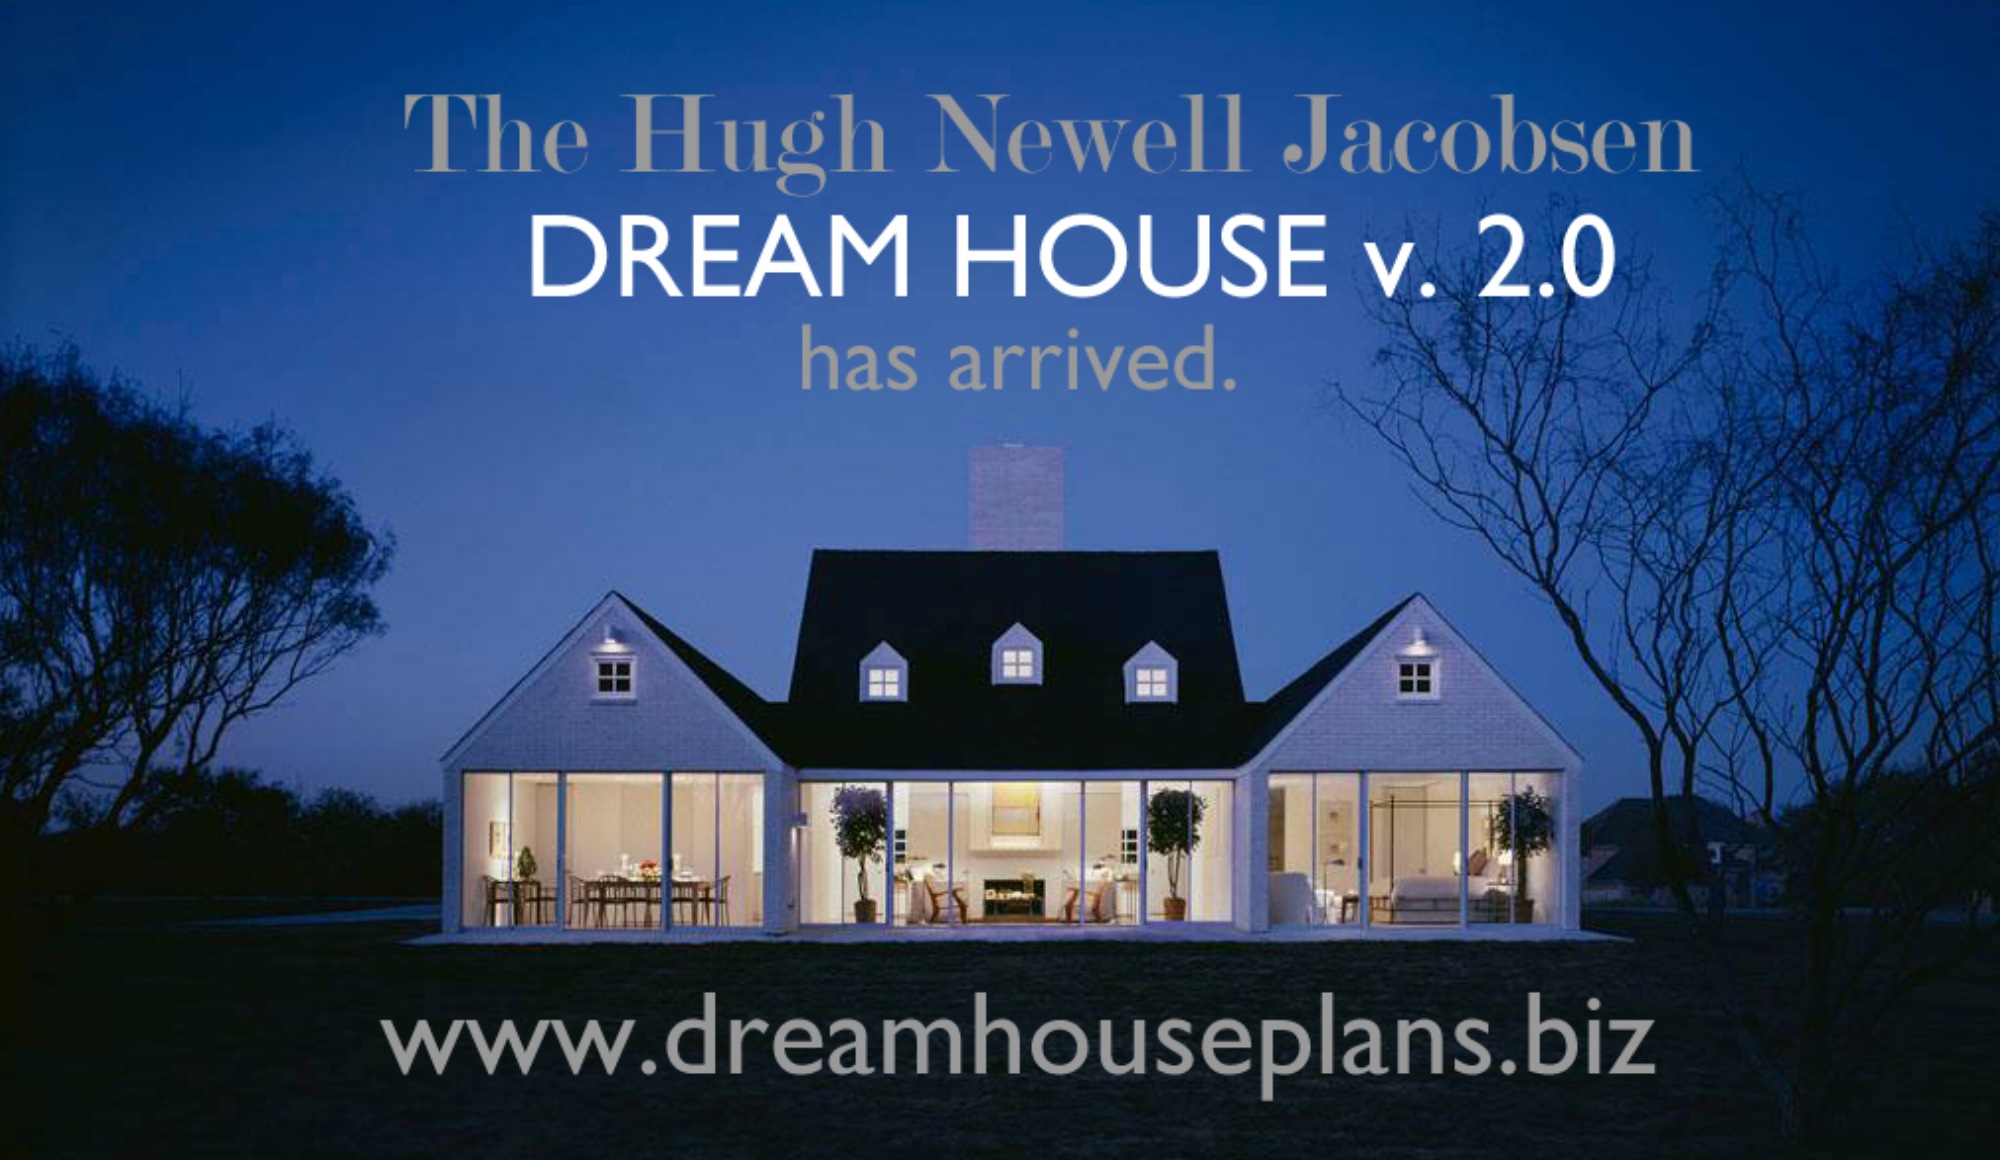 The Hugh Newell Jacobsen Dream House 2.0 is ready and taking orders. - Contact The Herring Bay Holding Company to place your order.Website:www.dreamhouseplans.bizEmail:support@dreamhouseplans.biz